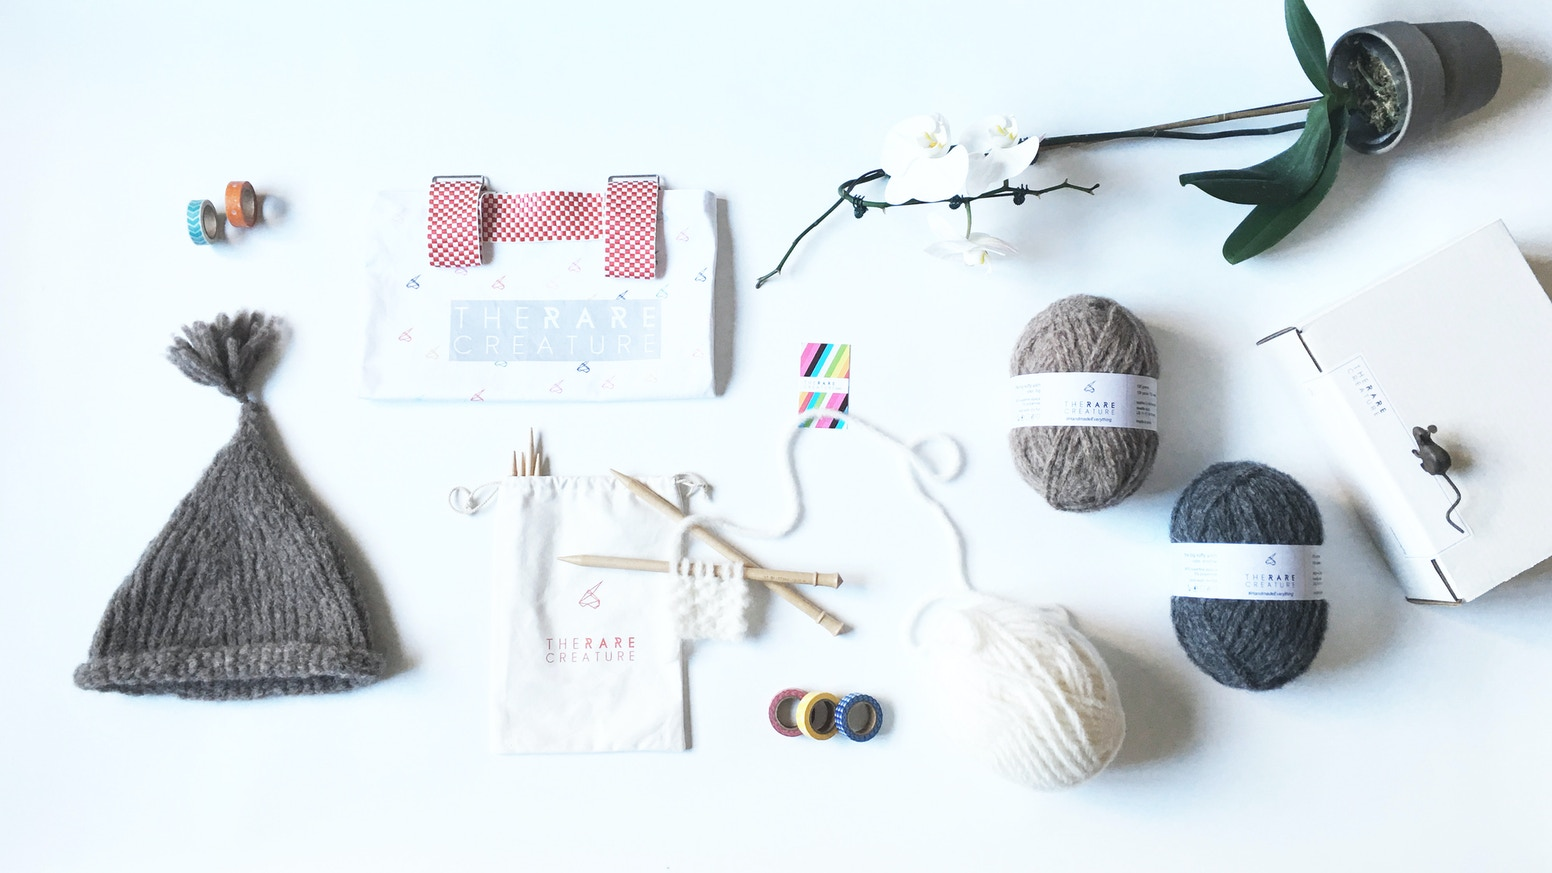 Modern sustainable brand with timeless designs, noble yarns + the ultimate knitting kits curated mindfully.